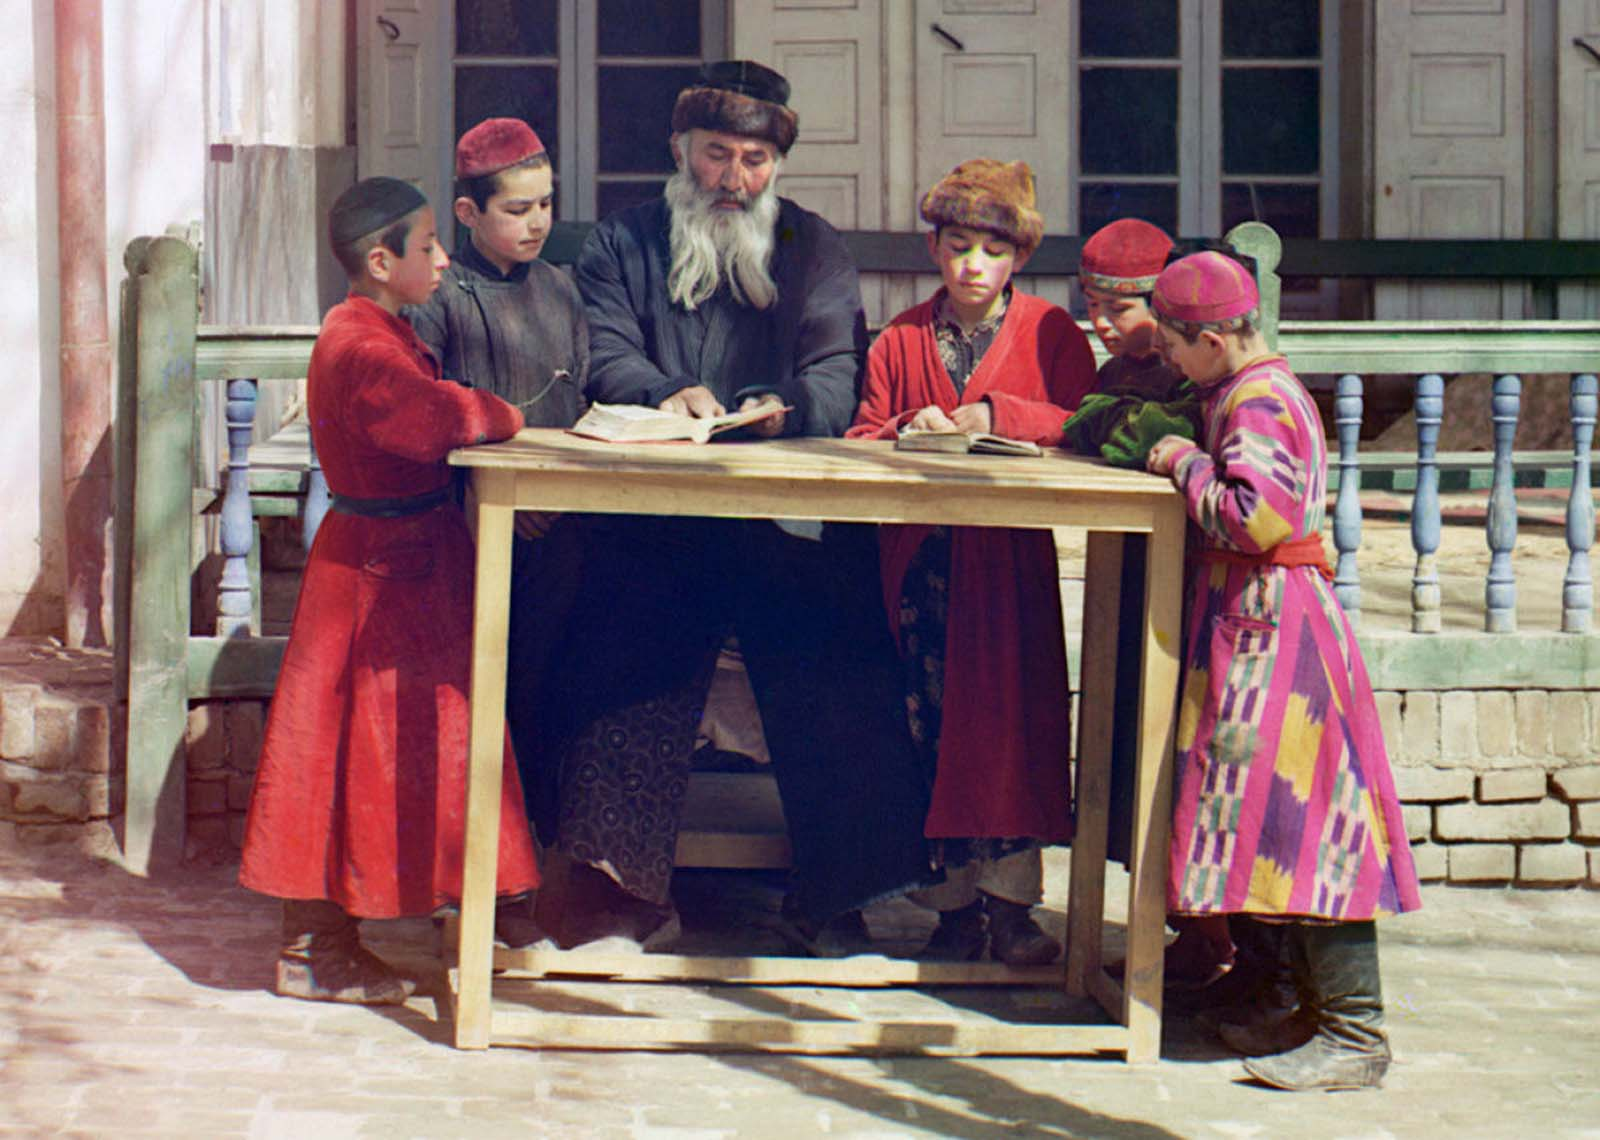 A group of Jewish children with a teacher in Samarkand, (in modern Uzbekistan), ca. 1910.